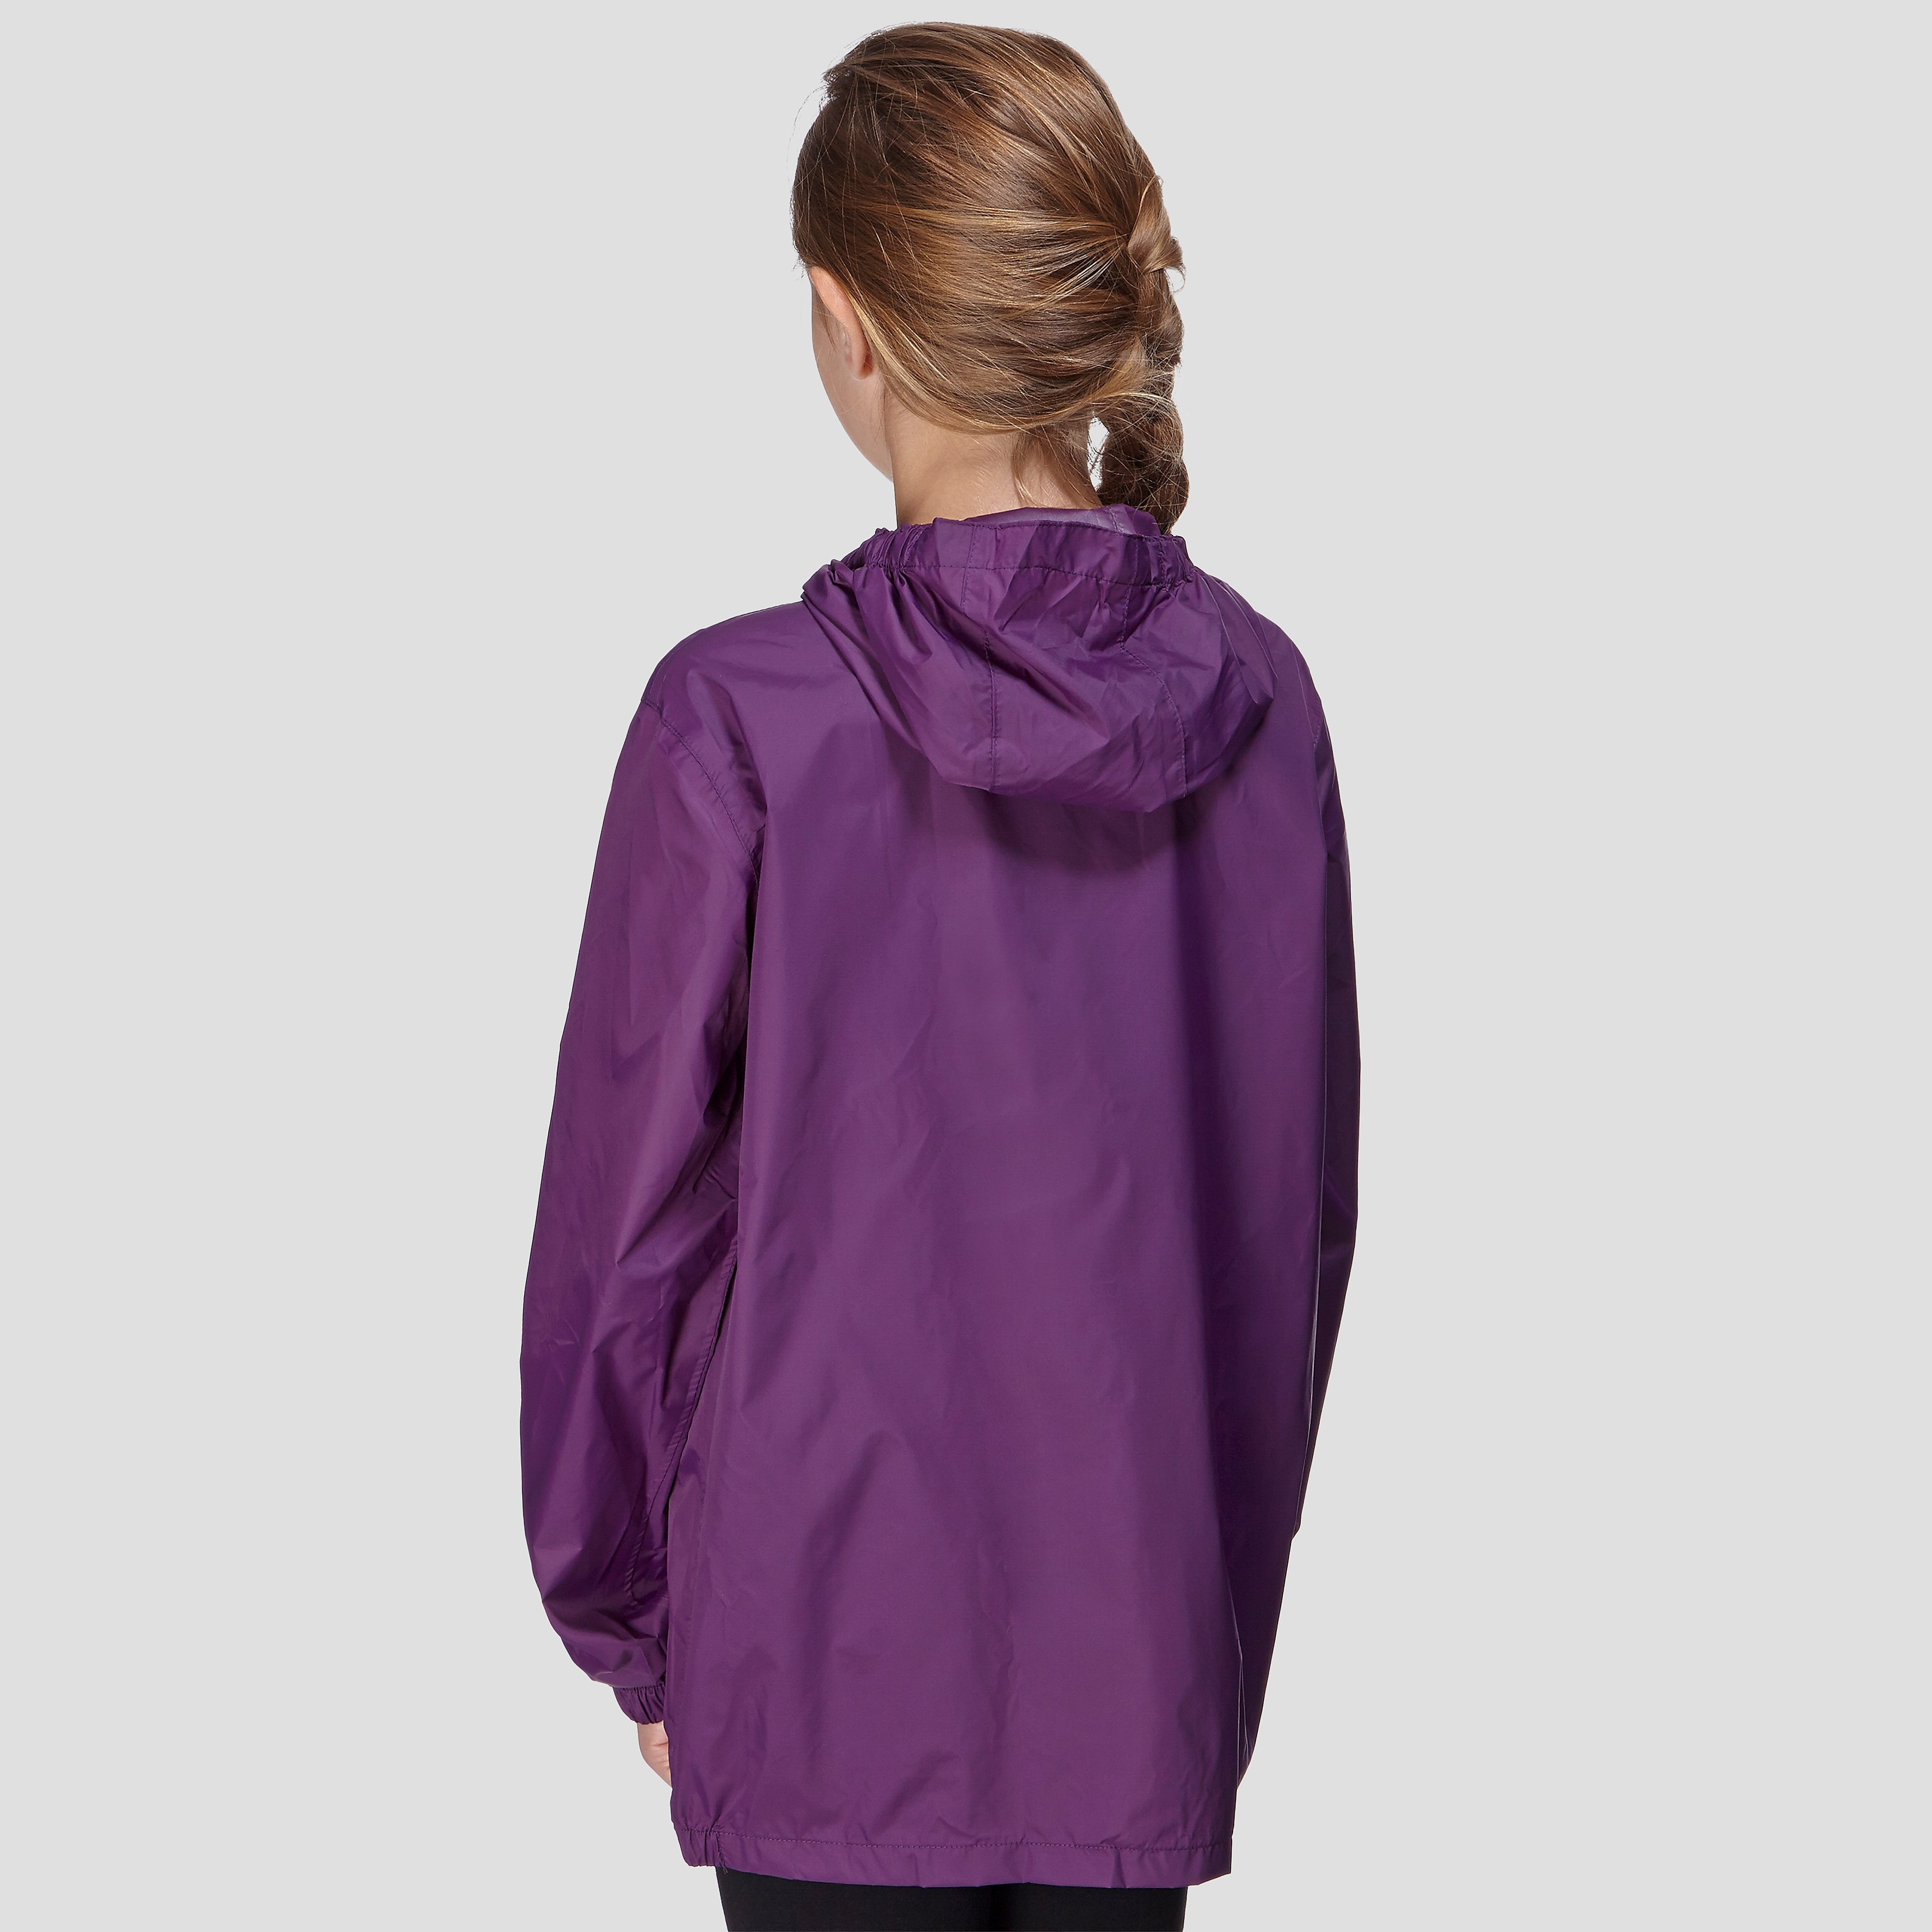 Peter Storm Girls' Packable Waterproof Jacket